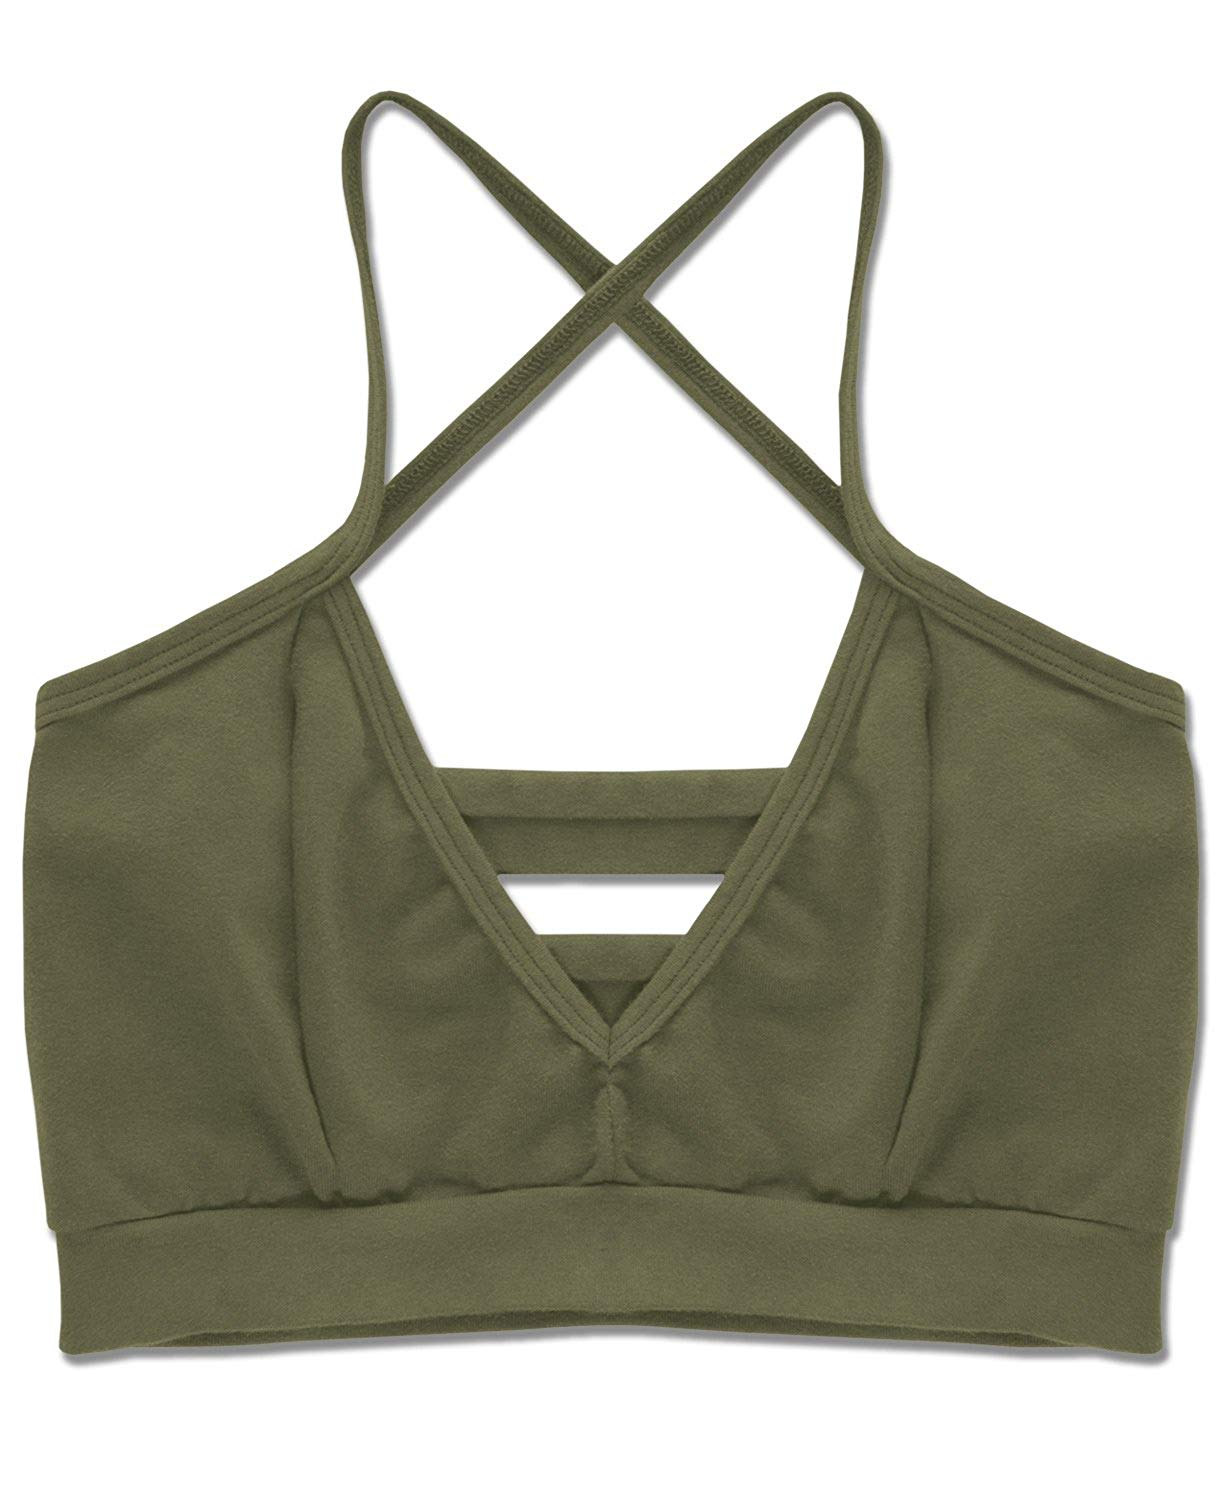 0ba2ae29bd58bc Get Quotations · Soul Flower Women s Organic Cotton Strappy Bralette